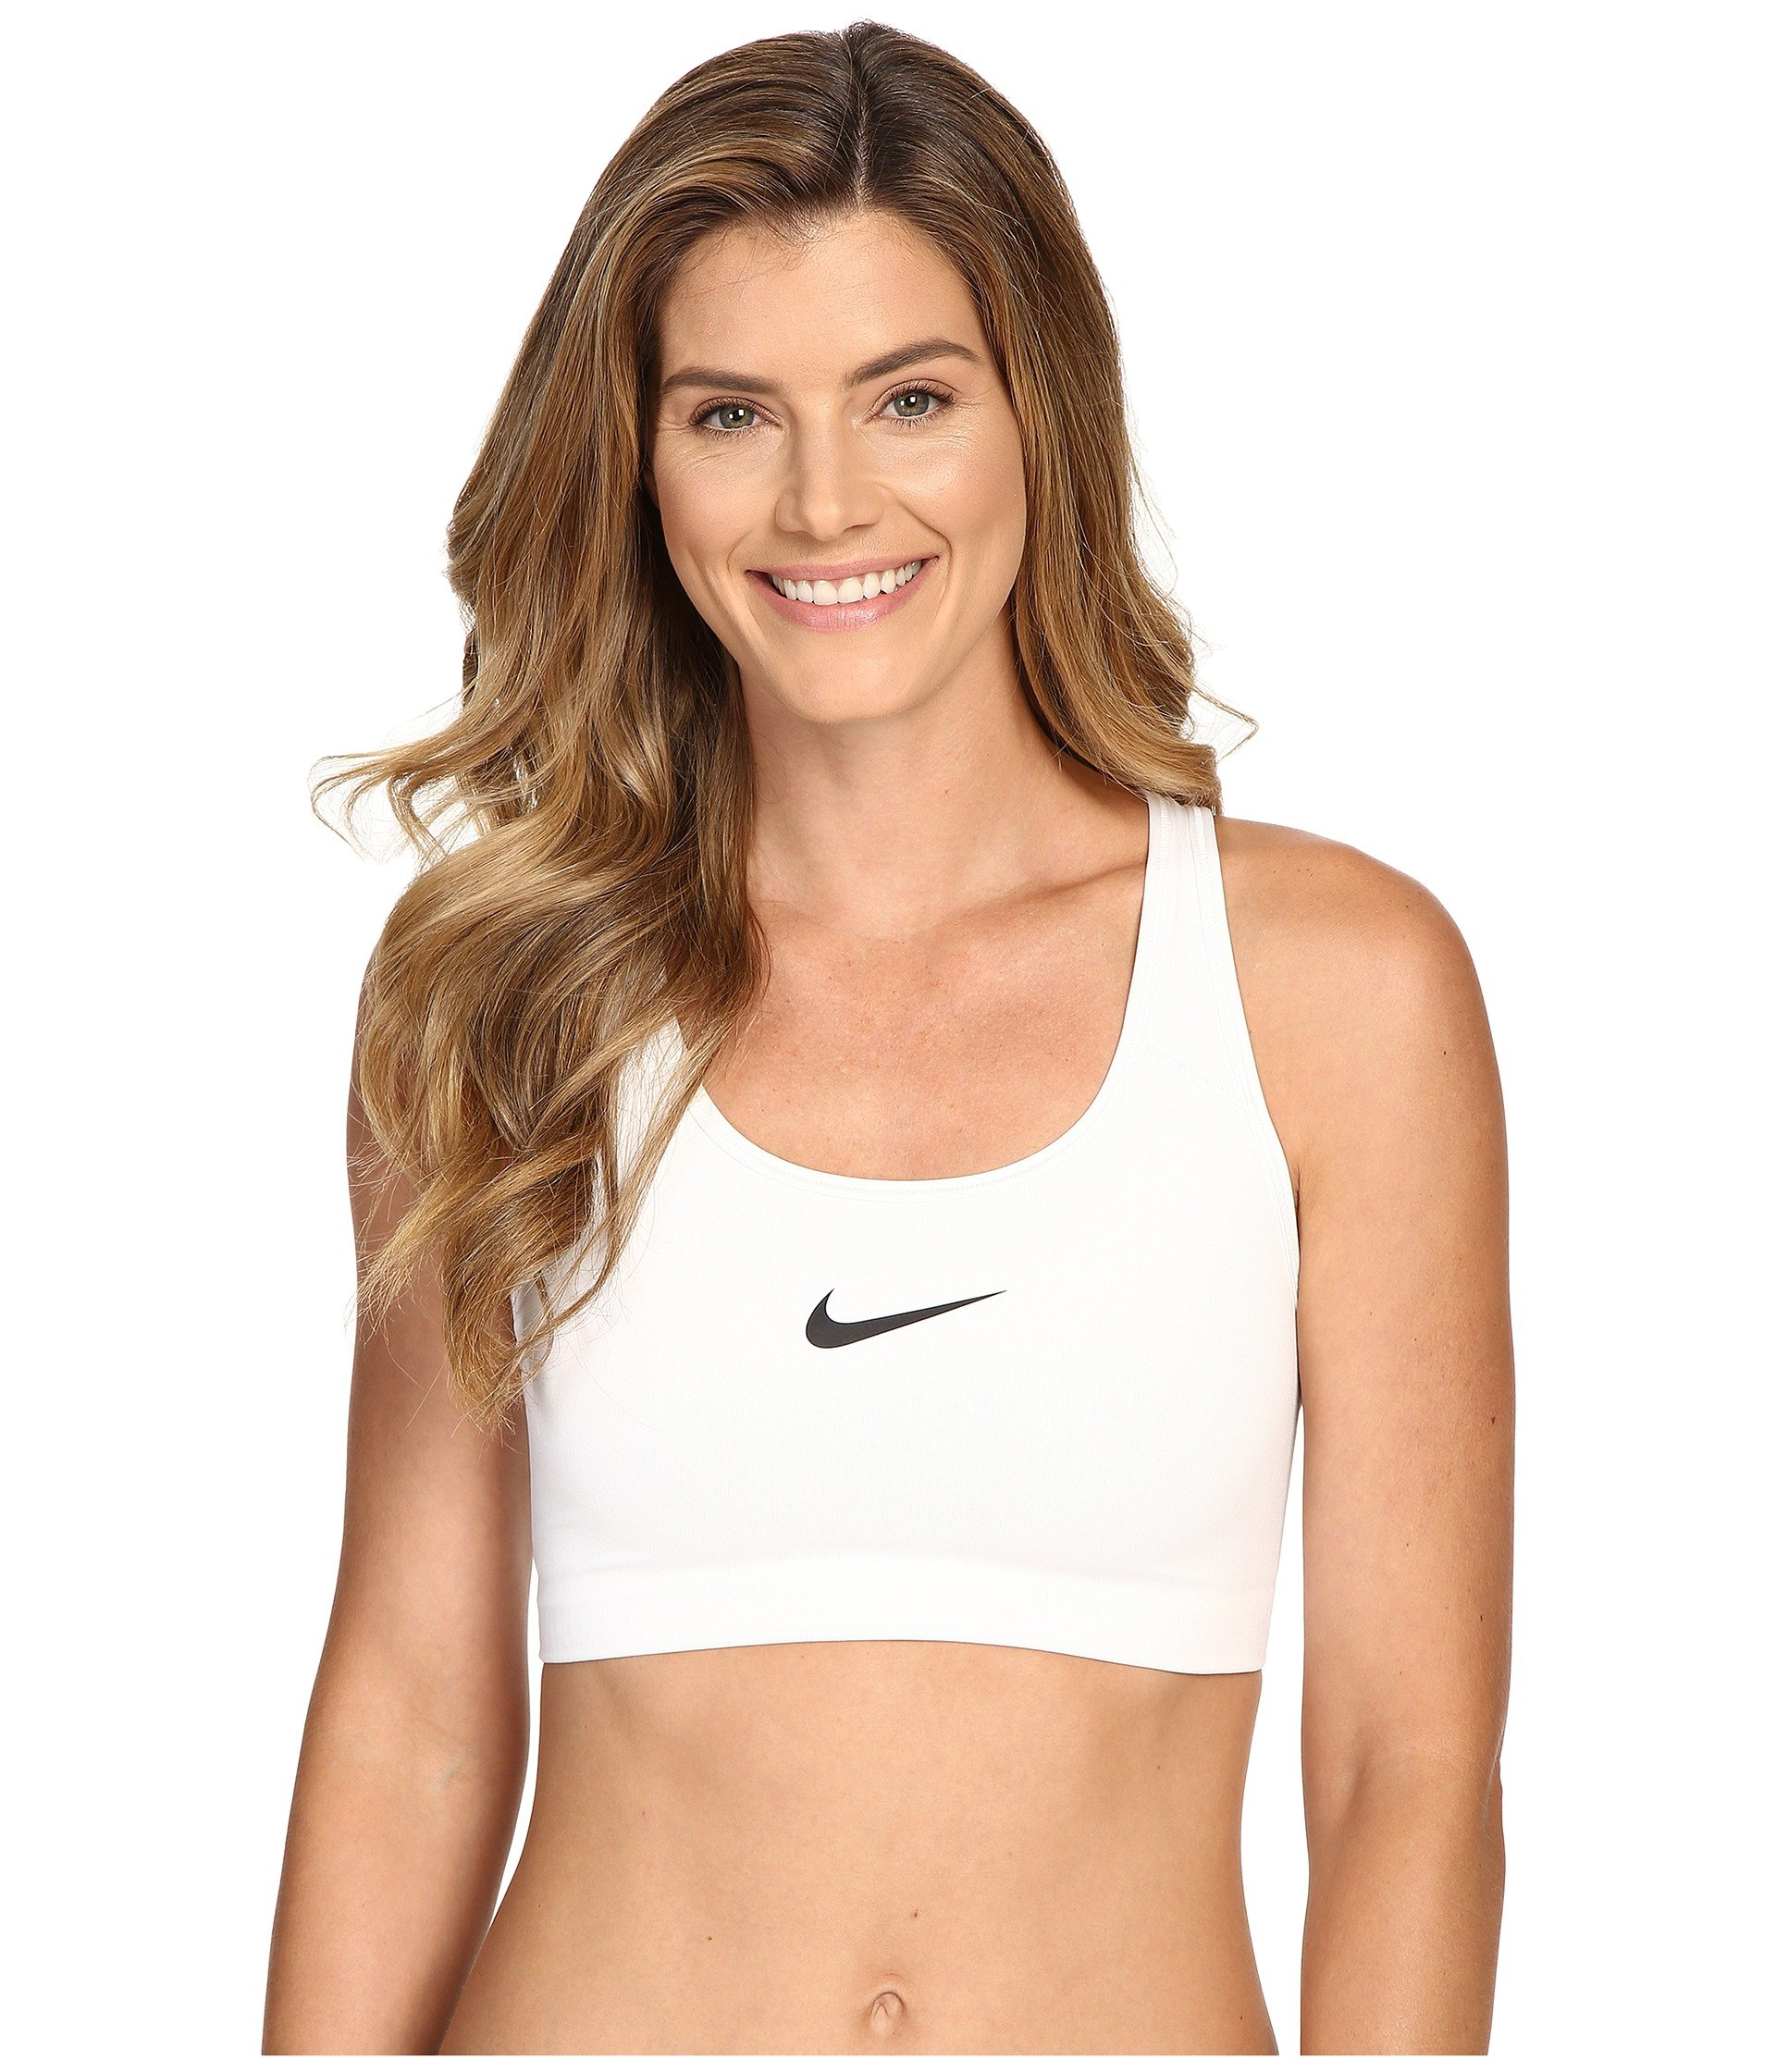 NIKE Women's Swoosh Sports Bra, White/Black, Medium